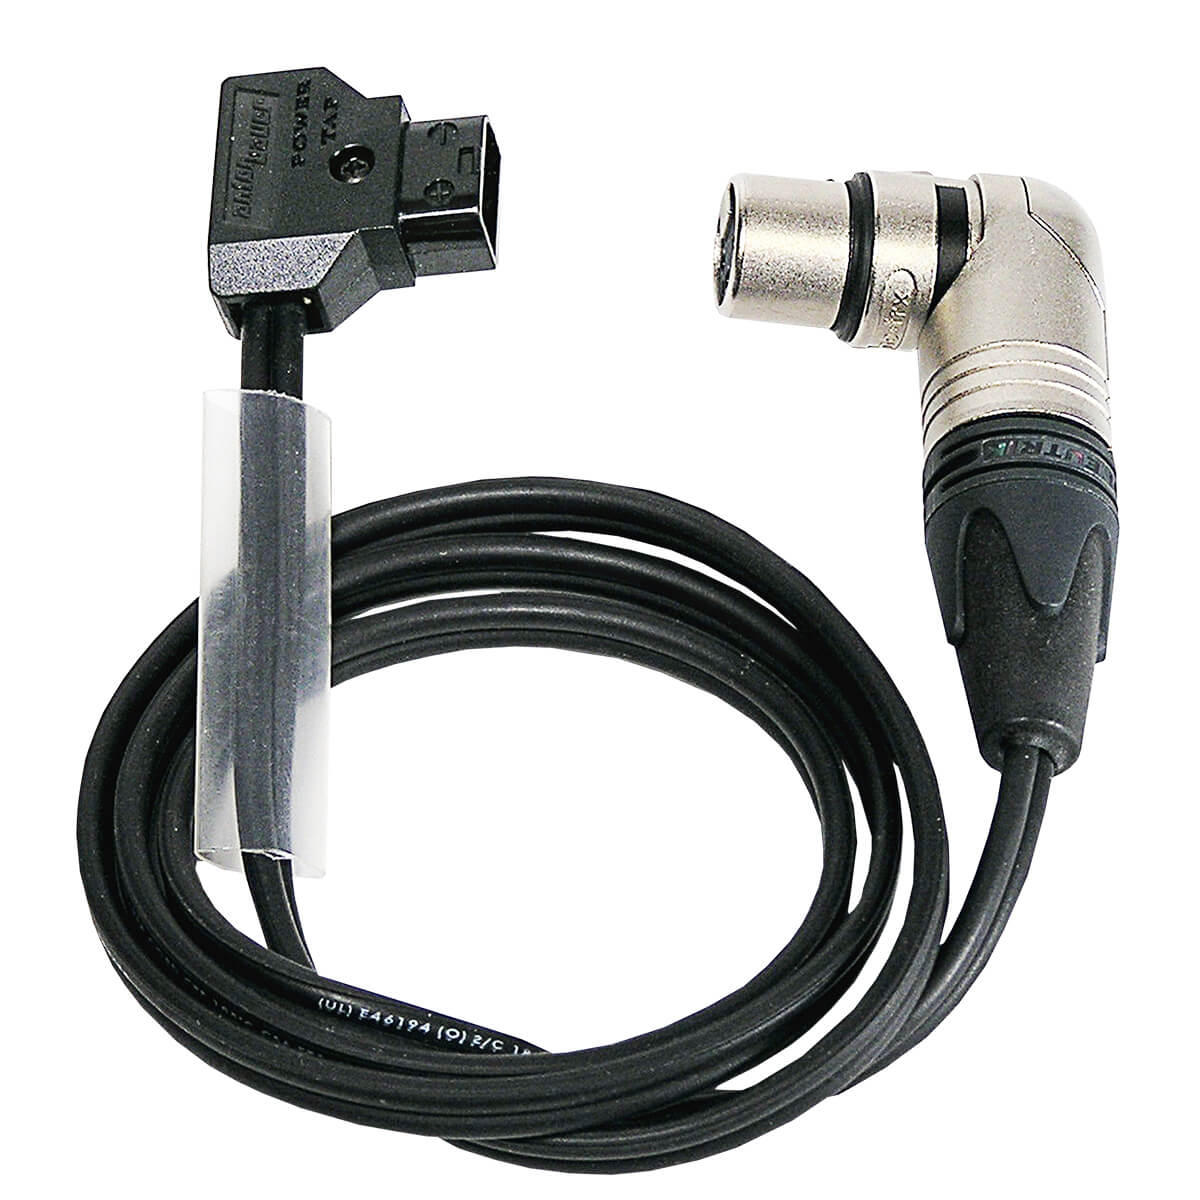 PowerTap 36 XLR 4-pin